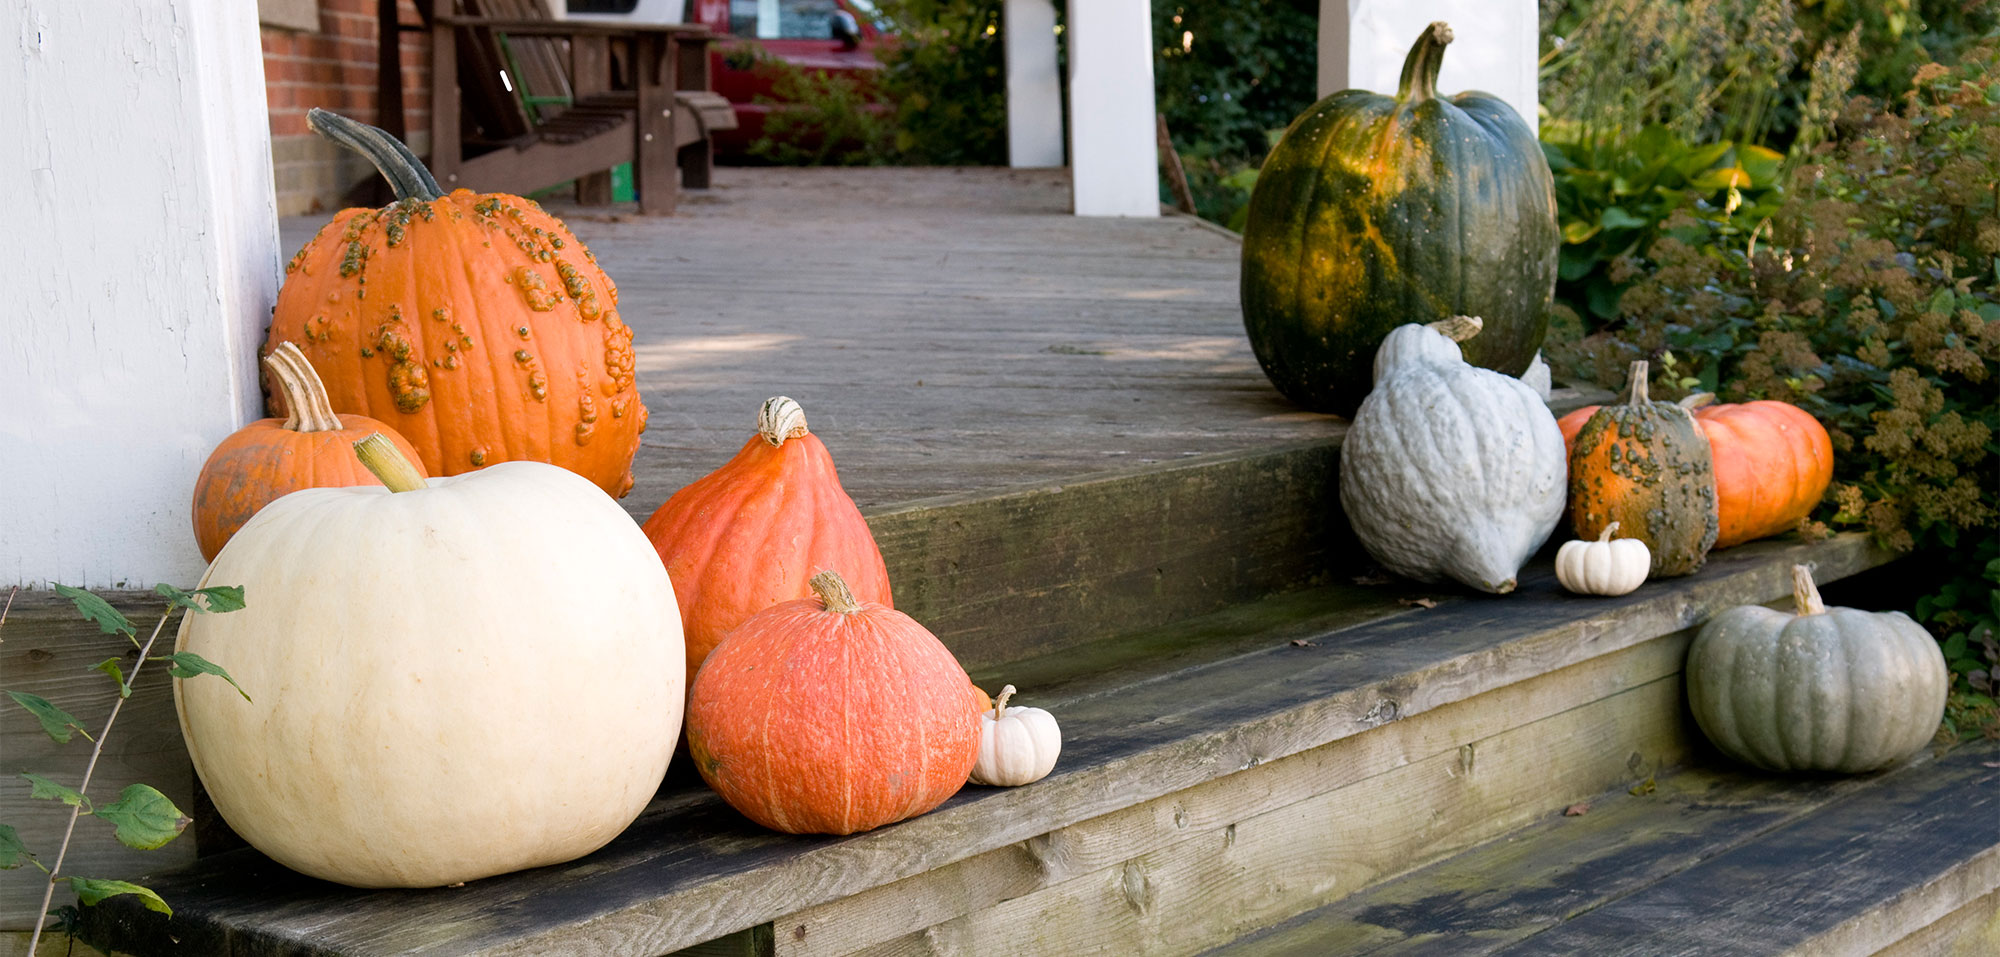 Variety of different kinds of pumpkins